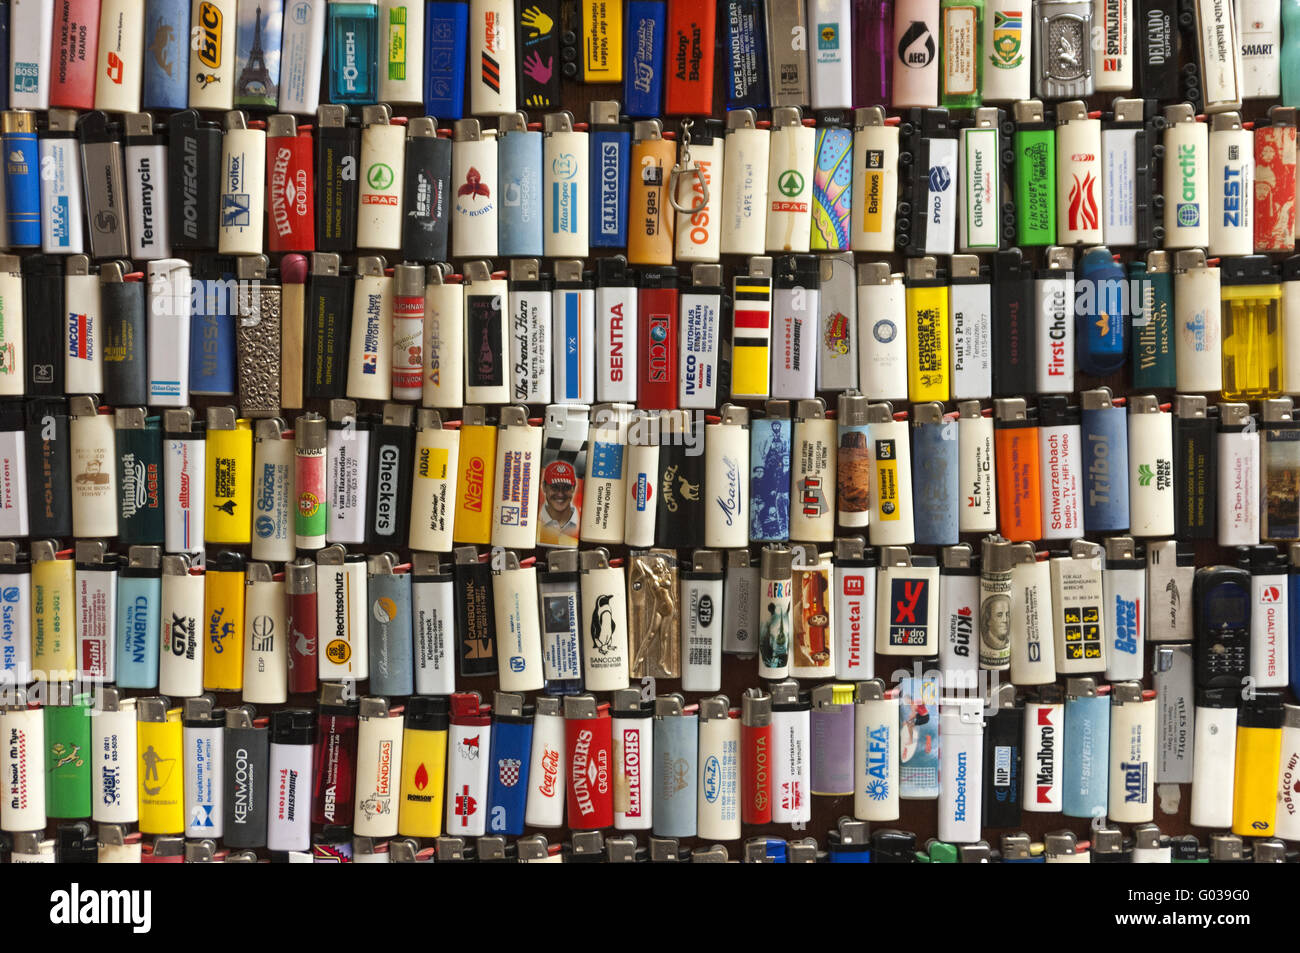 Hobby collection of gas pocket lighters - Stock Image